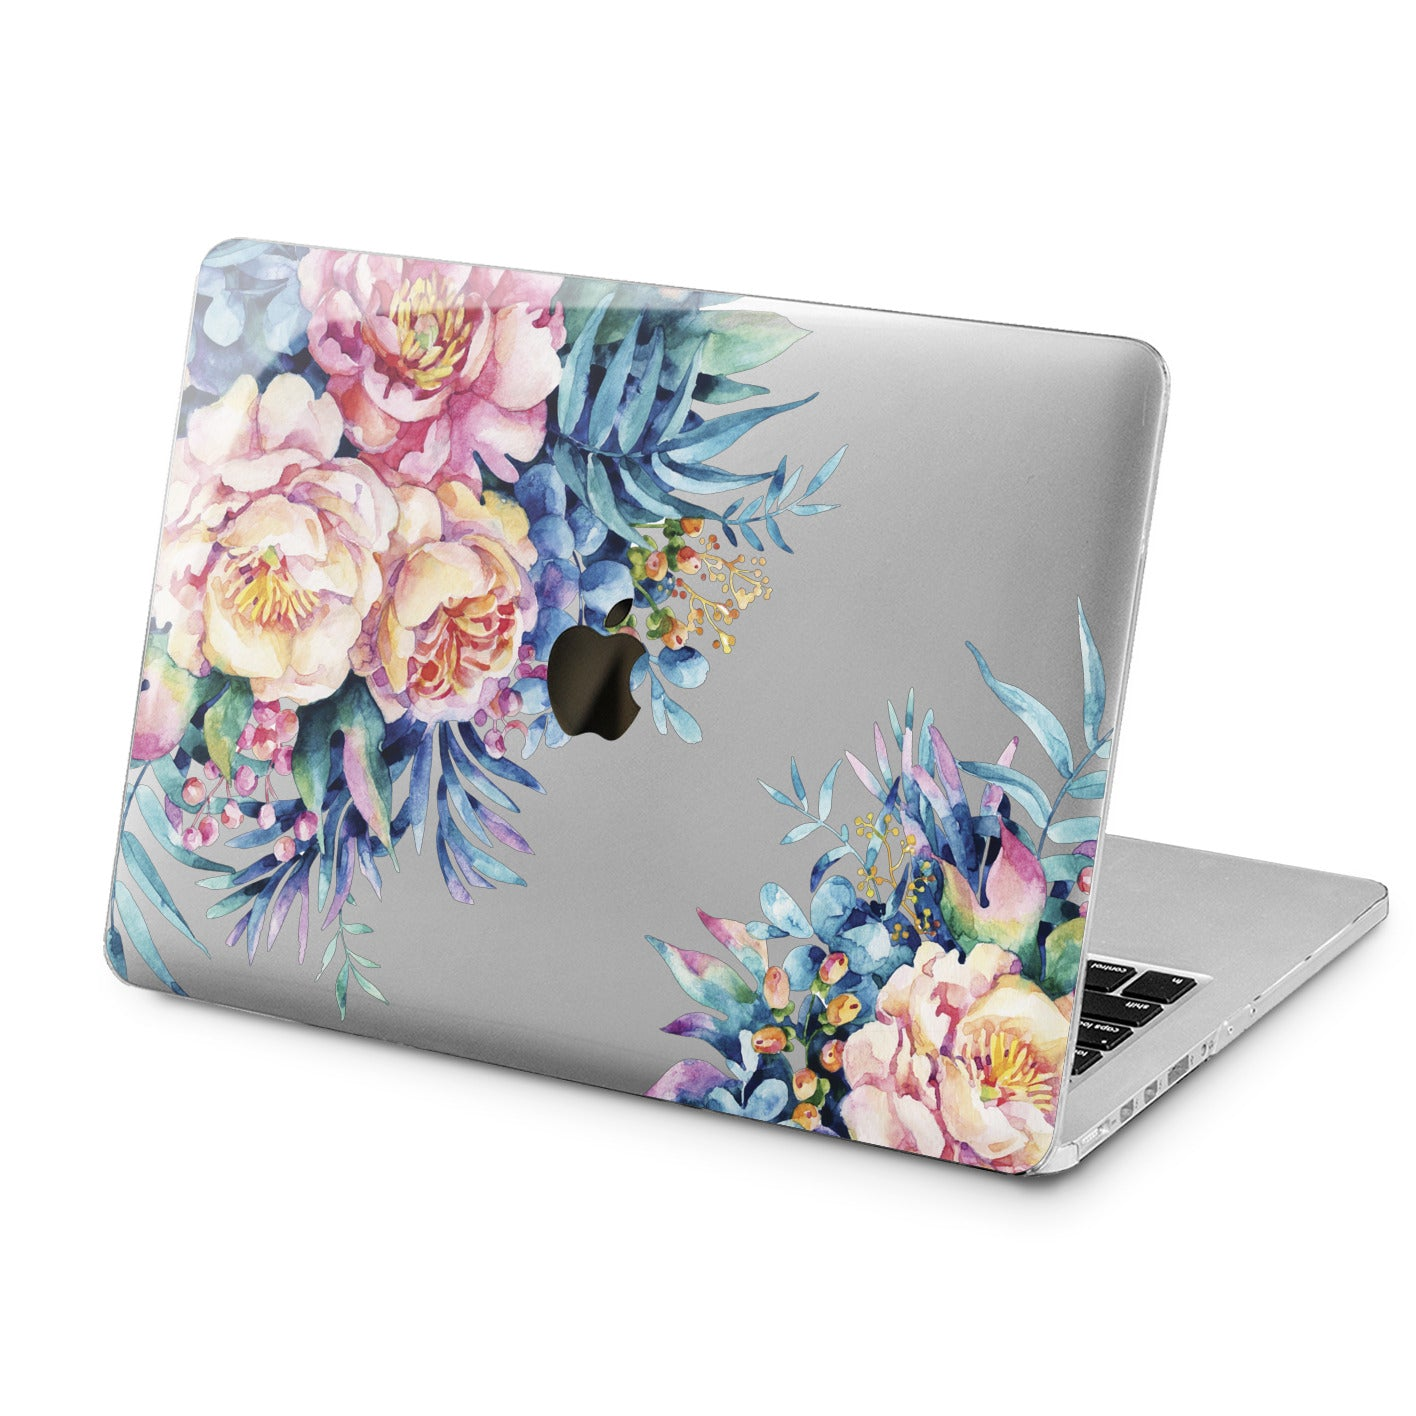 Lex Altern Watercolor Flowers Design Case for your Laptop Apple Macbook.